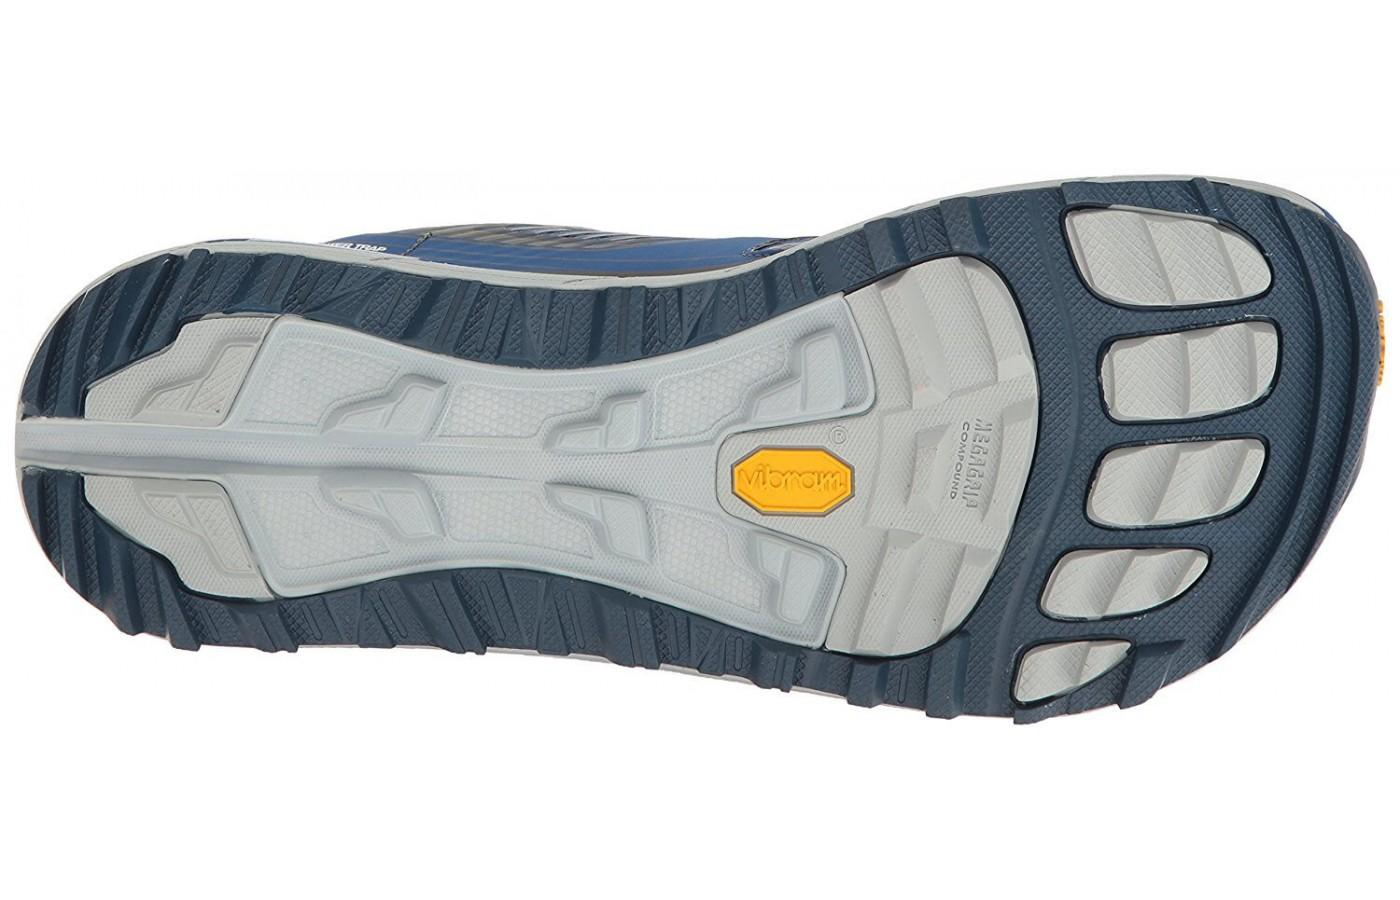 Altra Olympus 2.5 features a Vibram outsole